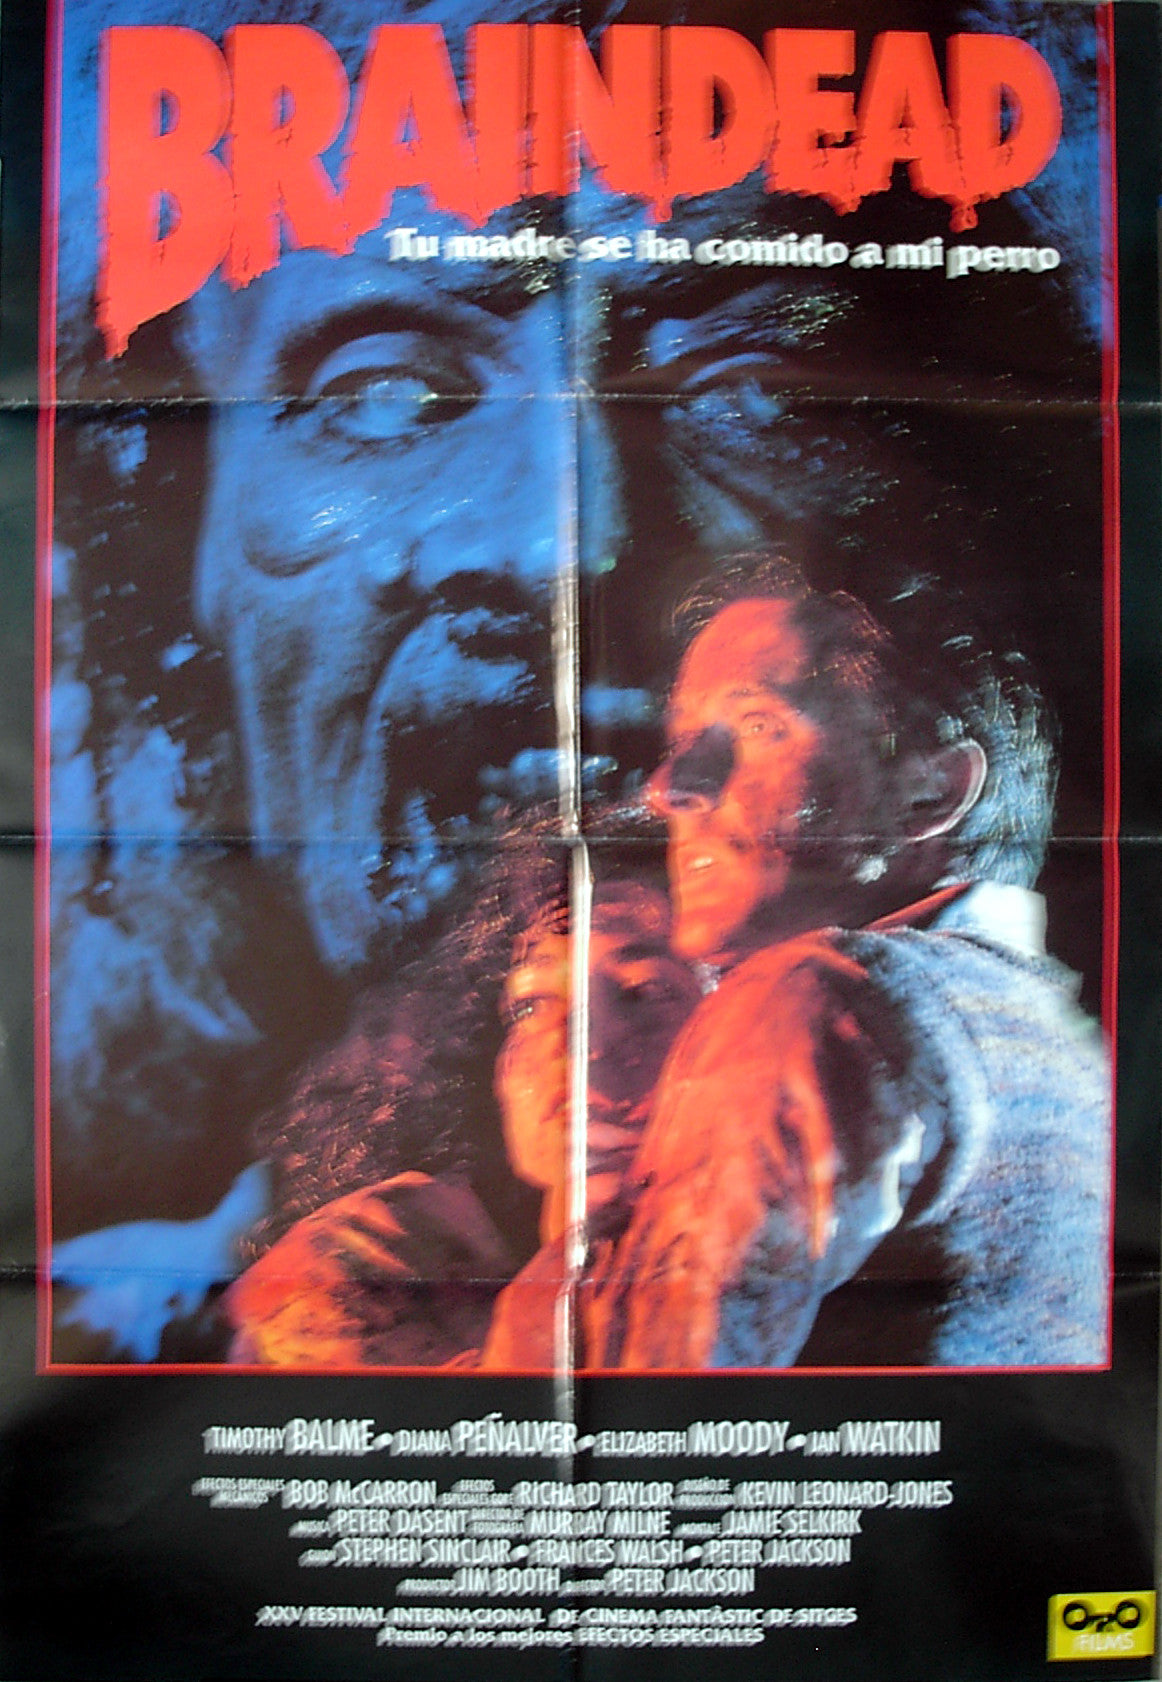 BRAINDEAD - Spanish poster